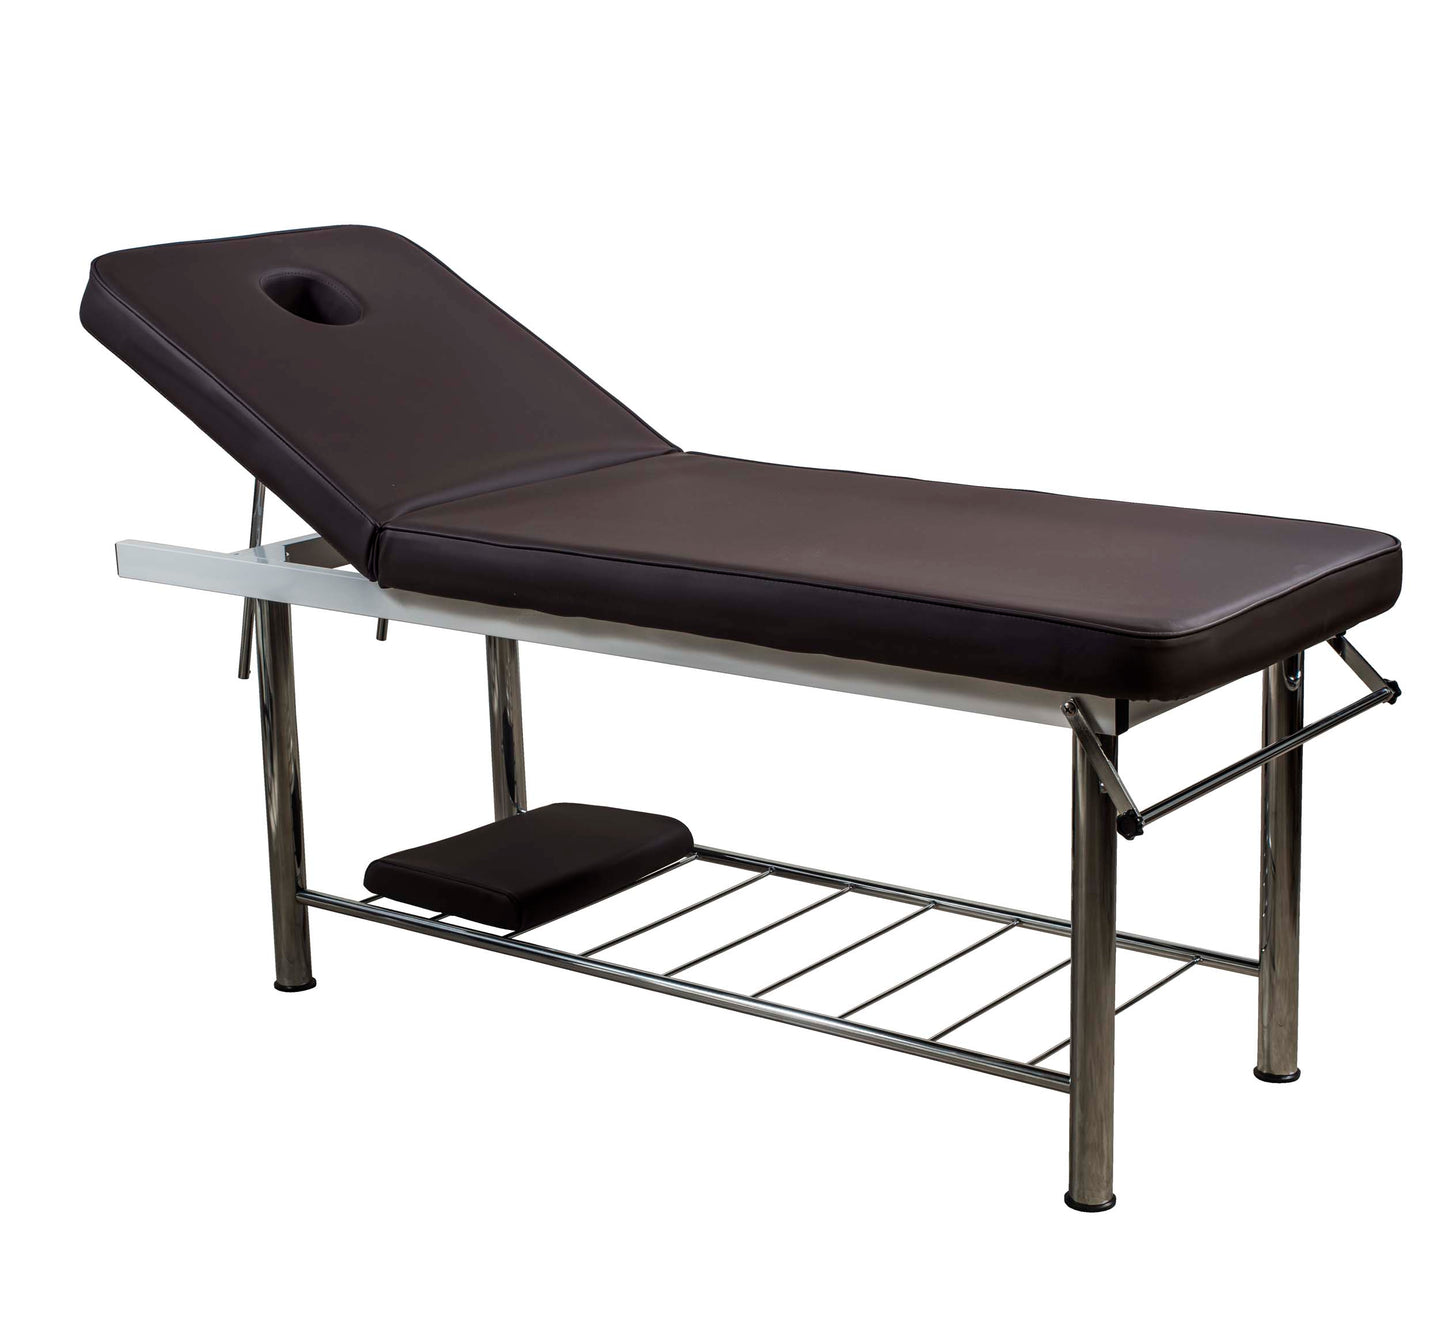 Whale Spa - Massage Bed ZD-807 - Superb Massage Tables